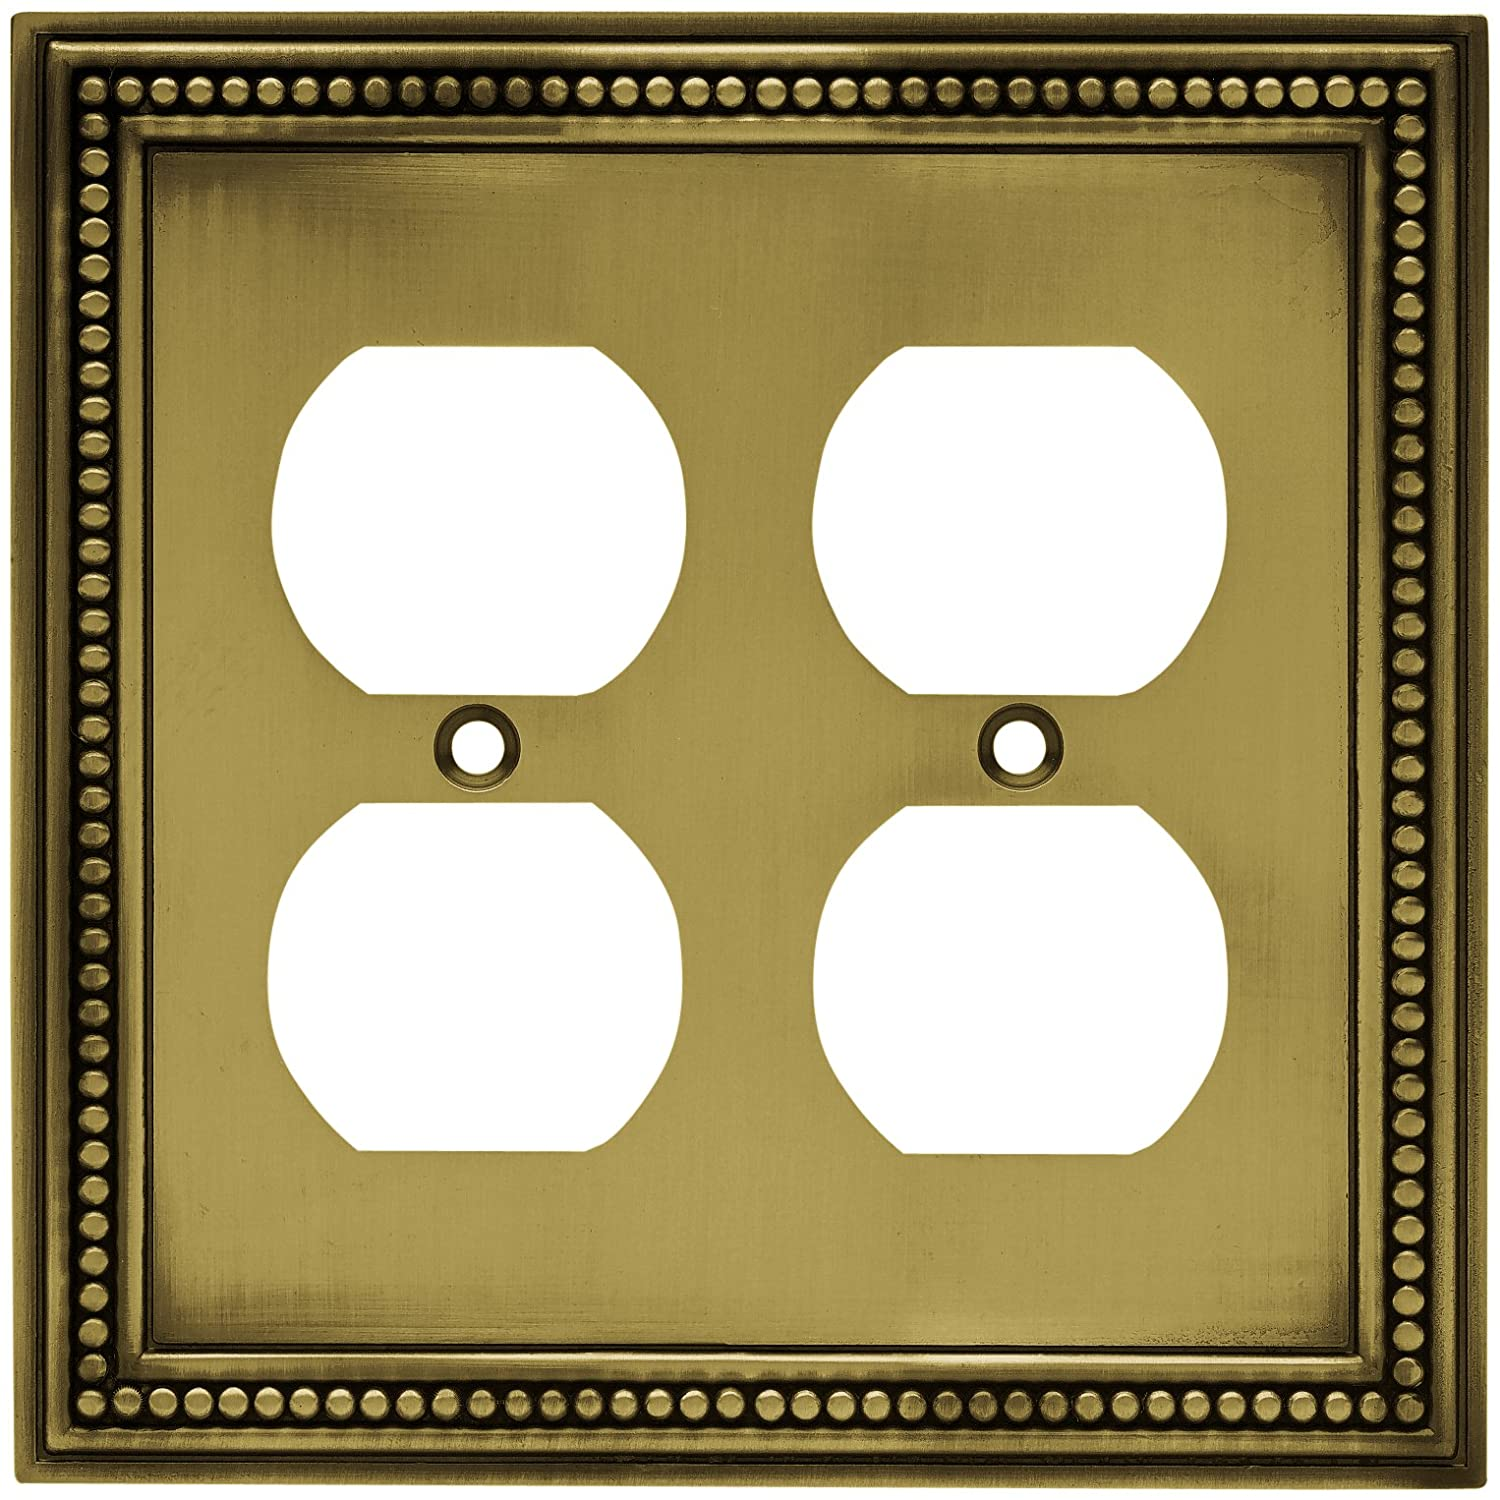 Brainerd 64767 Beaded Double Duplex Outlet Wall Plate Switch Plate